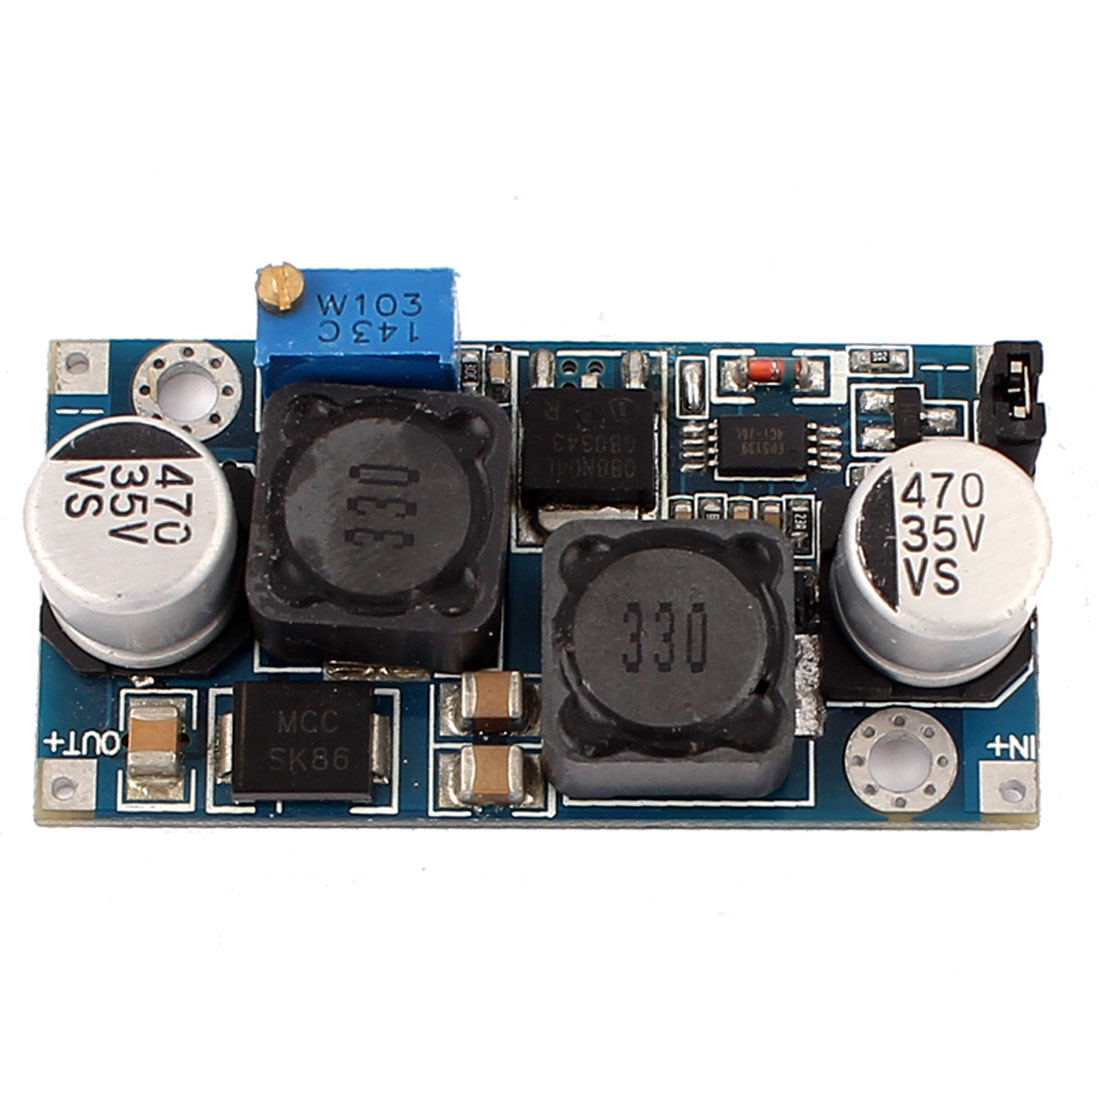 New DC-DC Solar Voltage Auto Boost Buck SEPIC Step Up Step Down Converter Module